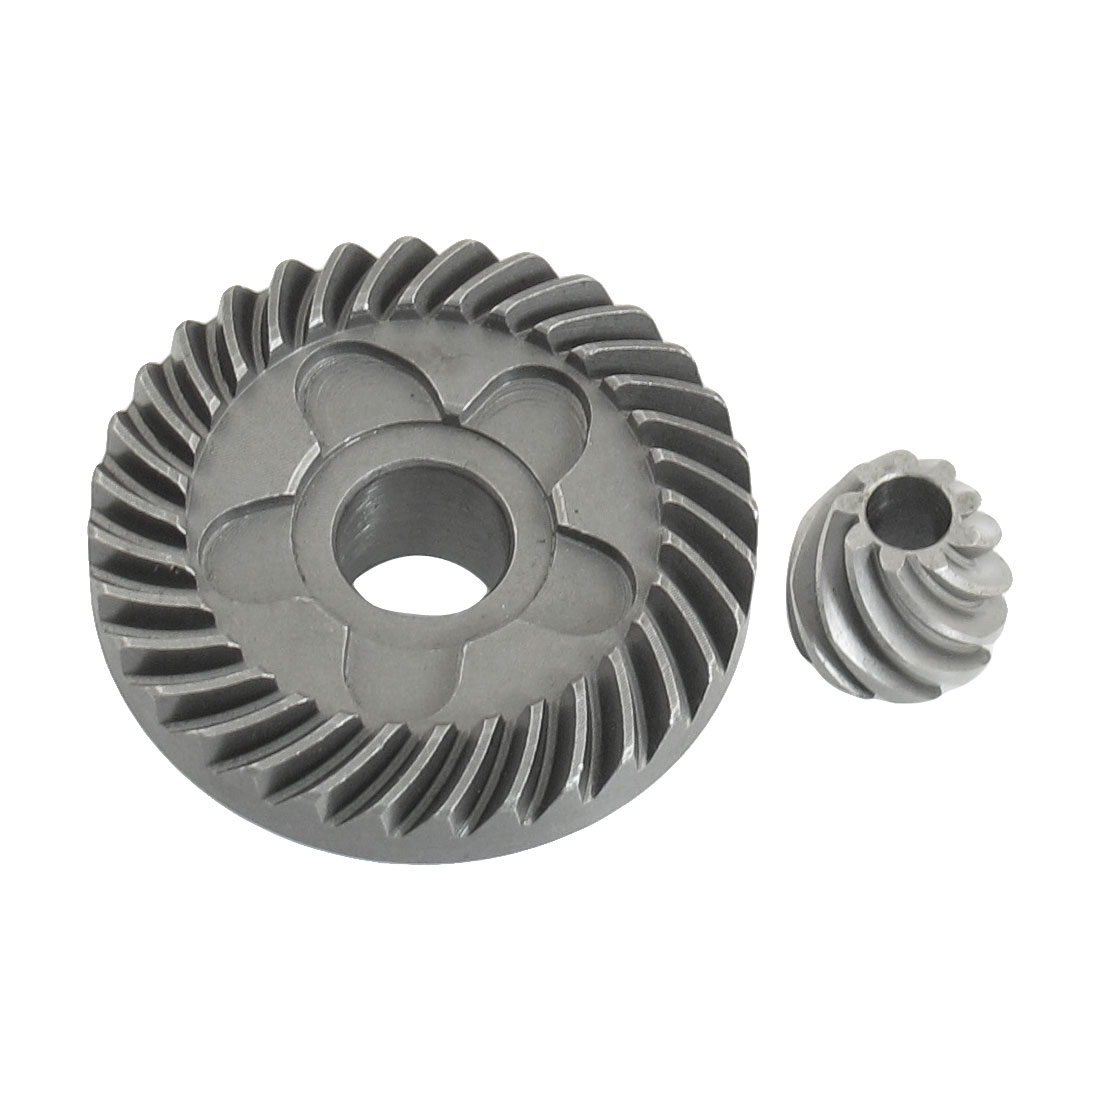 2 Pcs Repair Replacement Angle Grinder Spiral Bevel Gear for Bosch GWS6-100